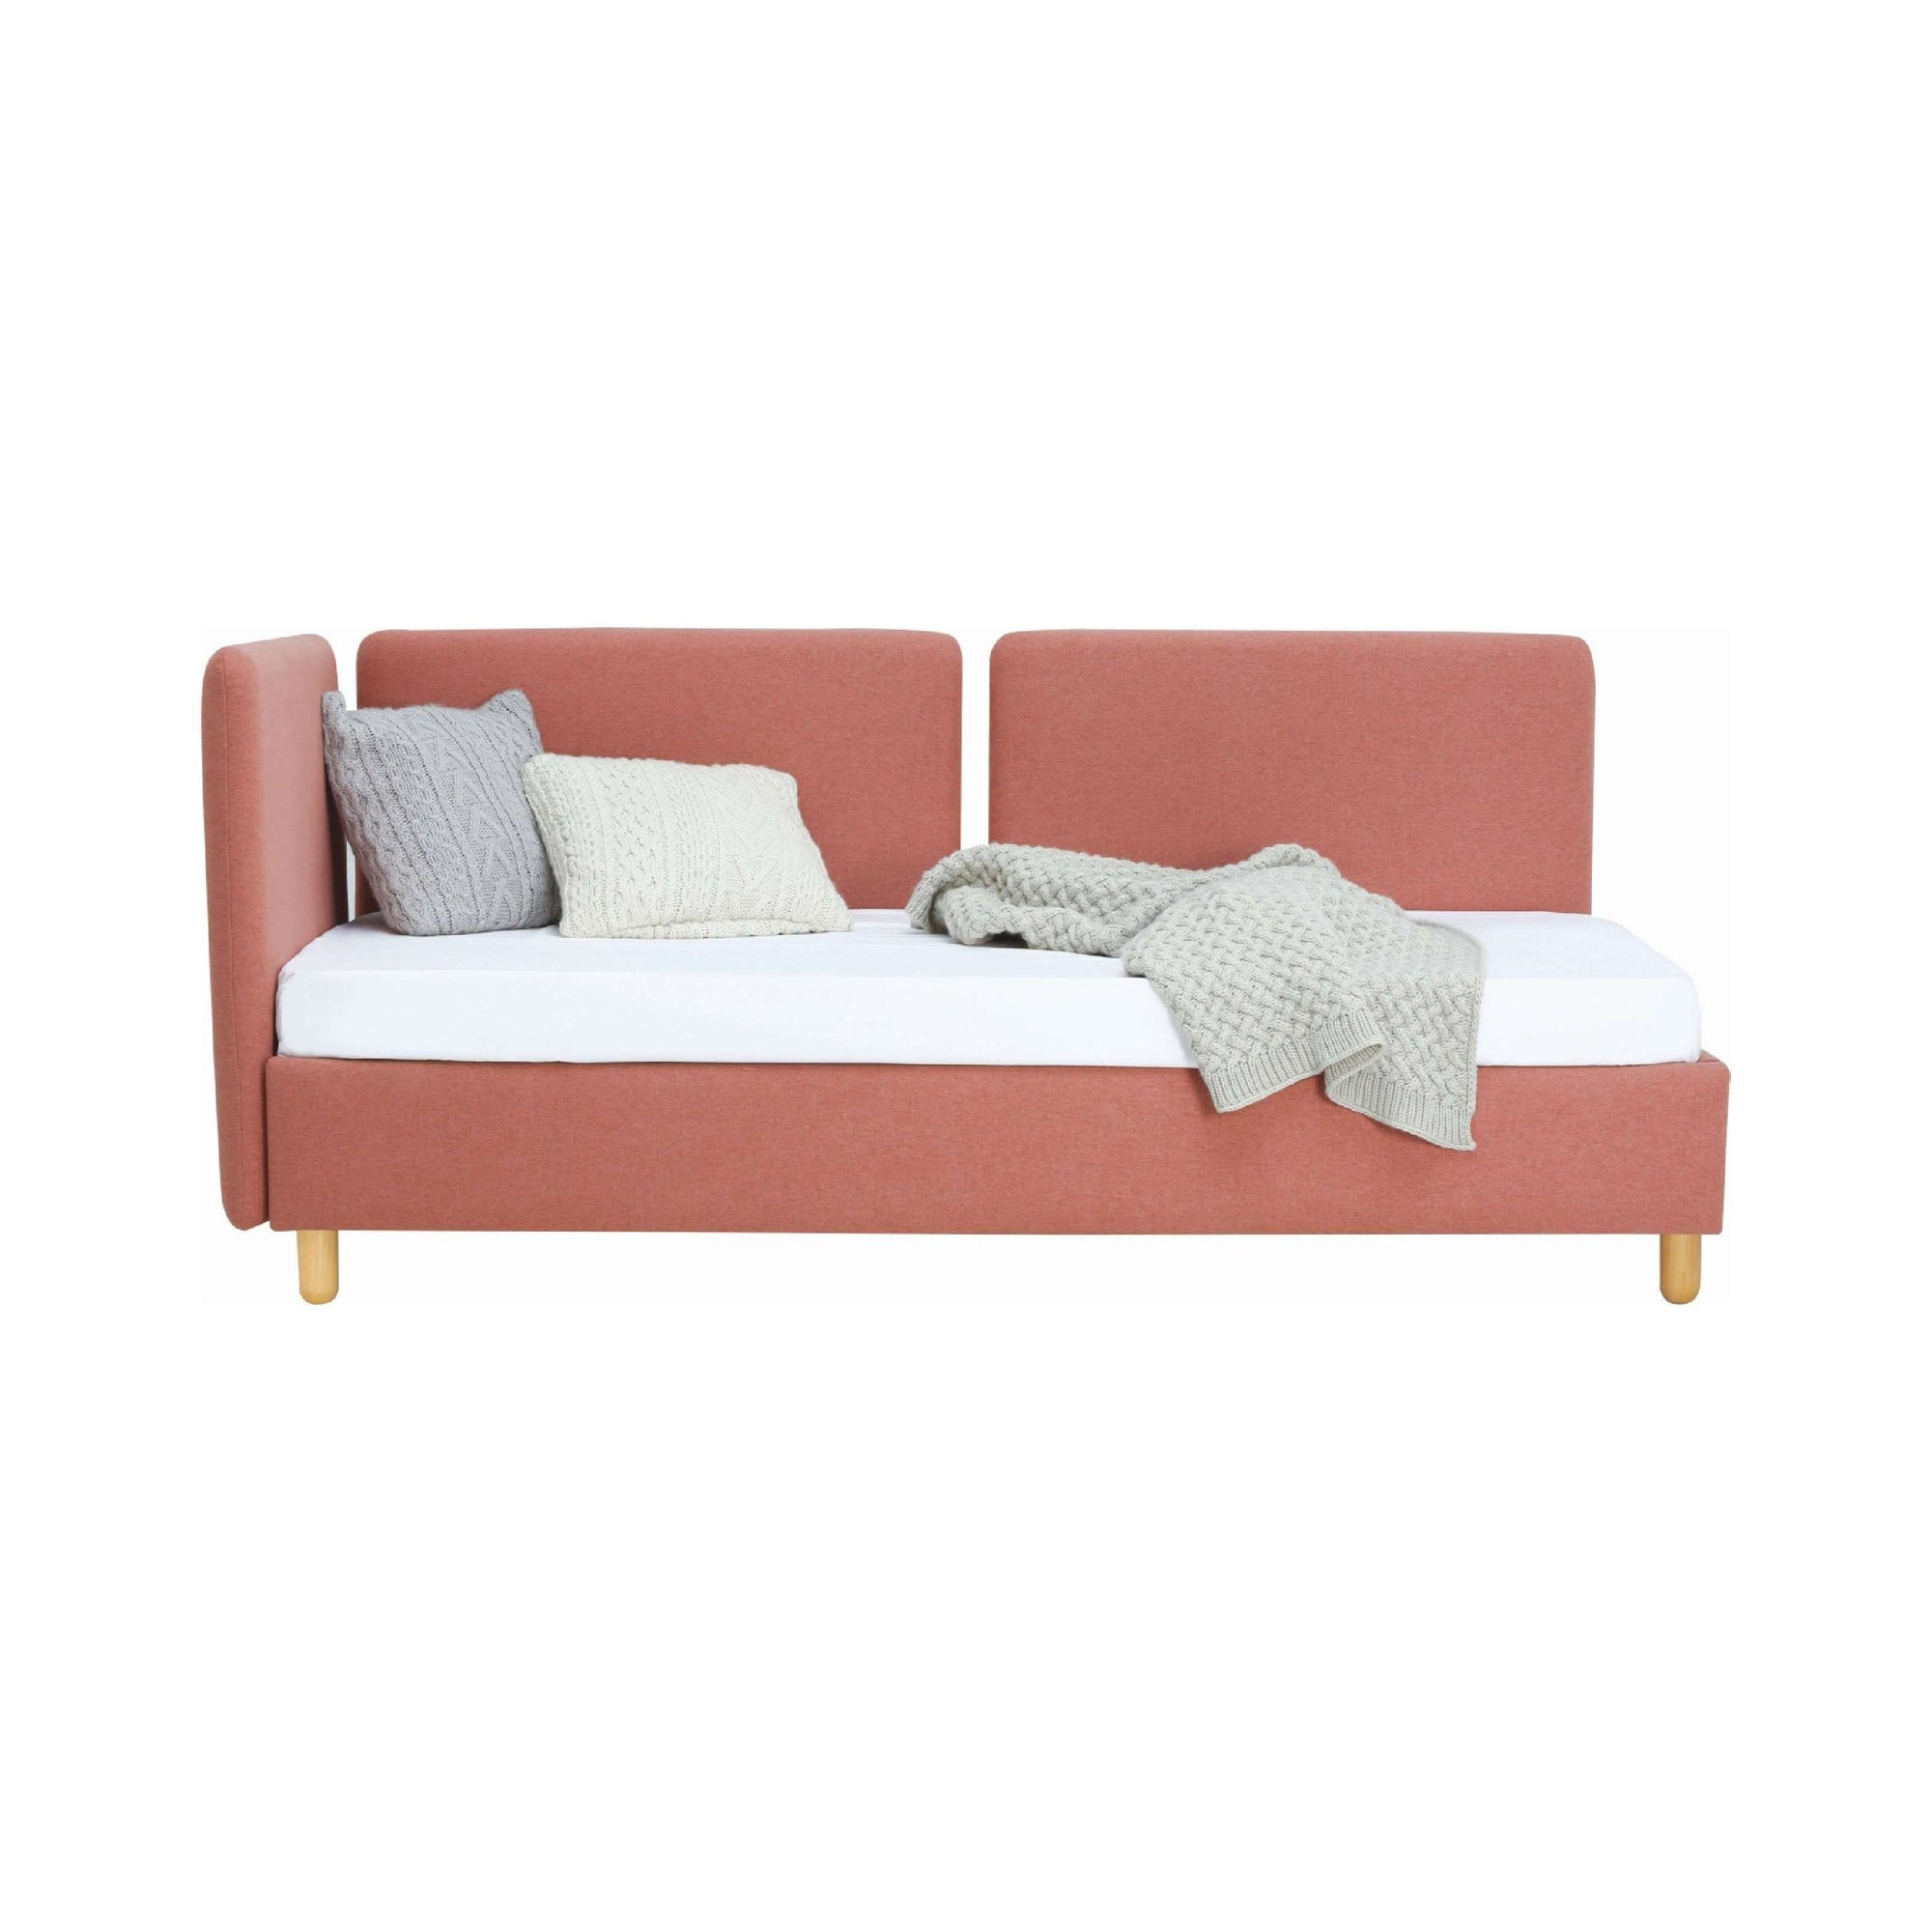 Briska Daybed with Burnt Umber Colour Dimity Fabric